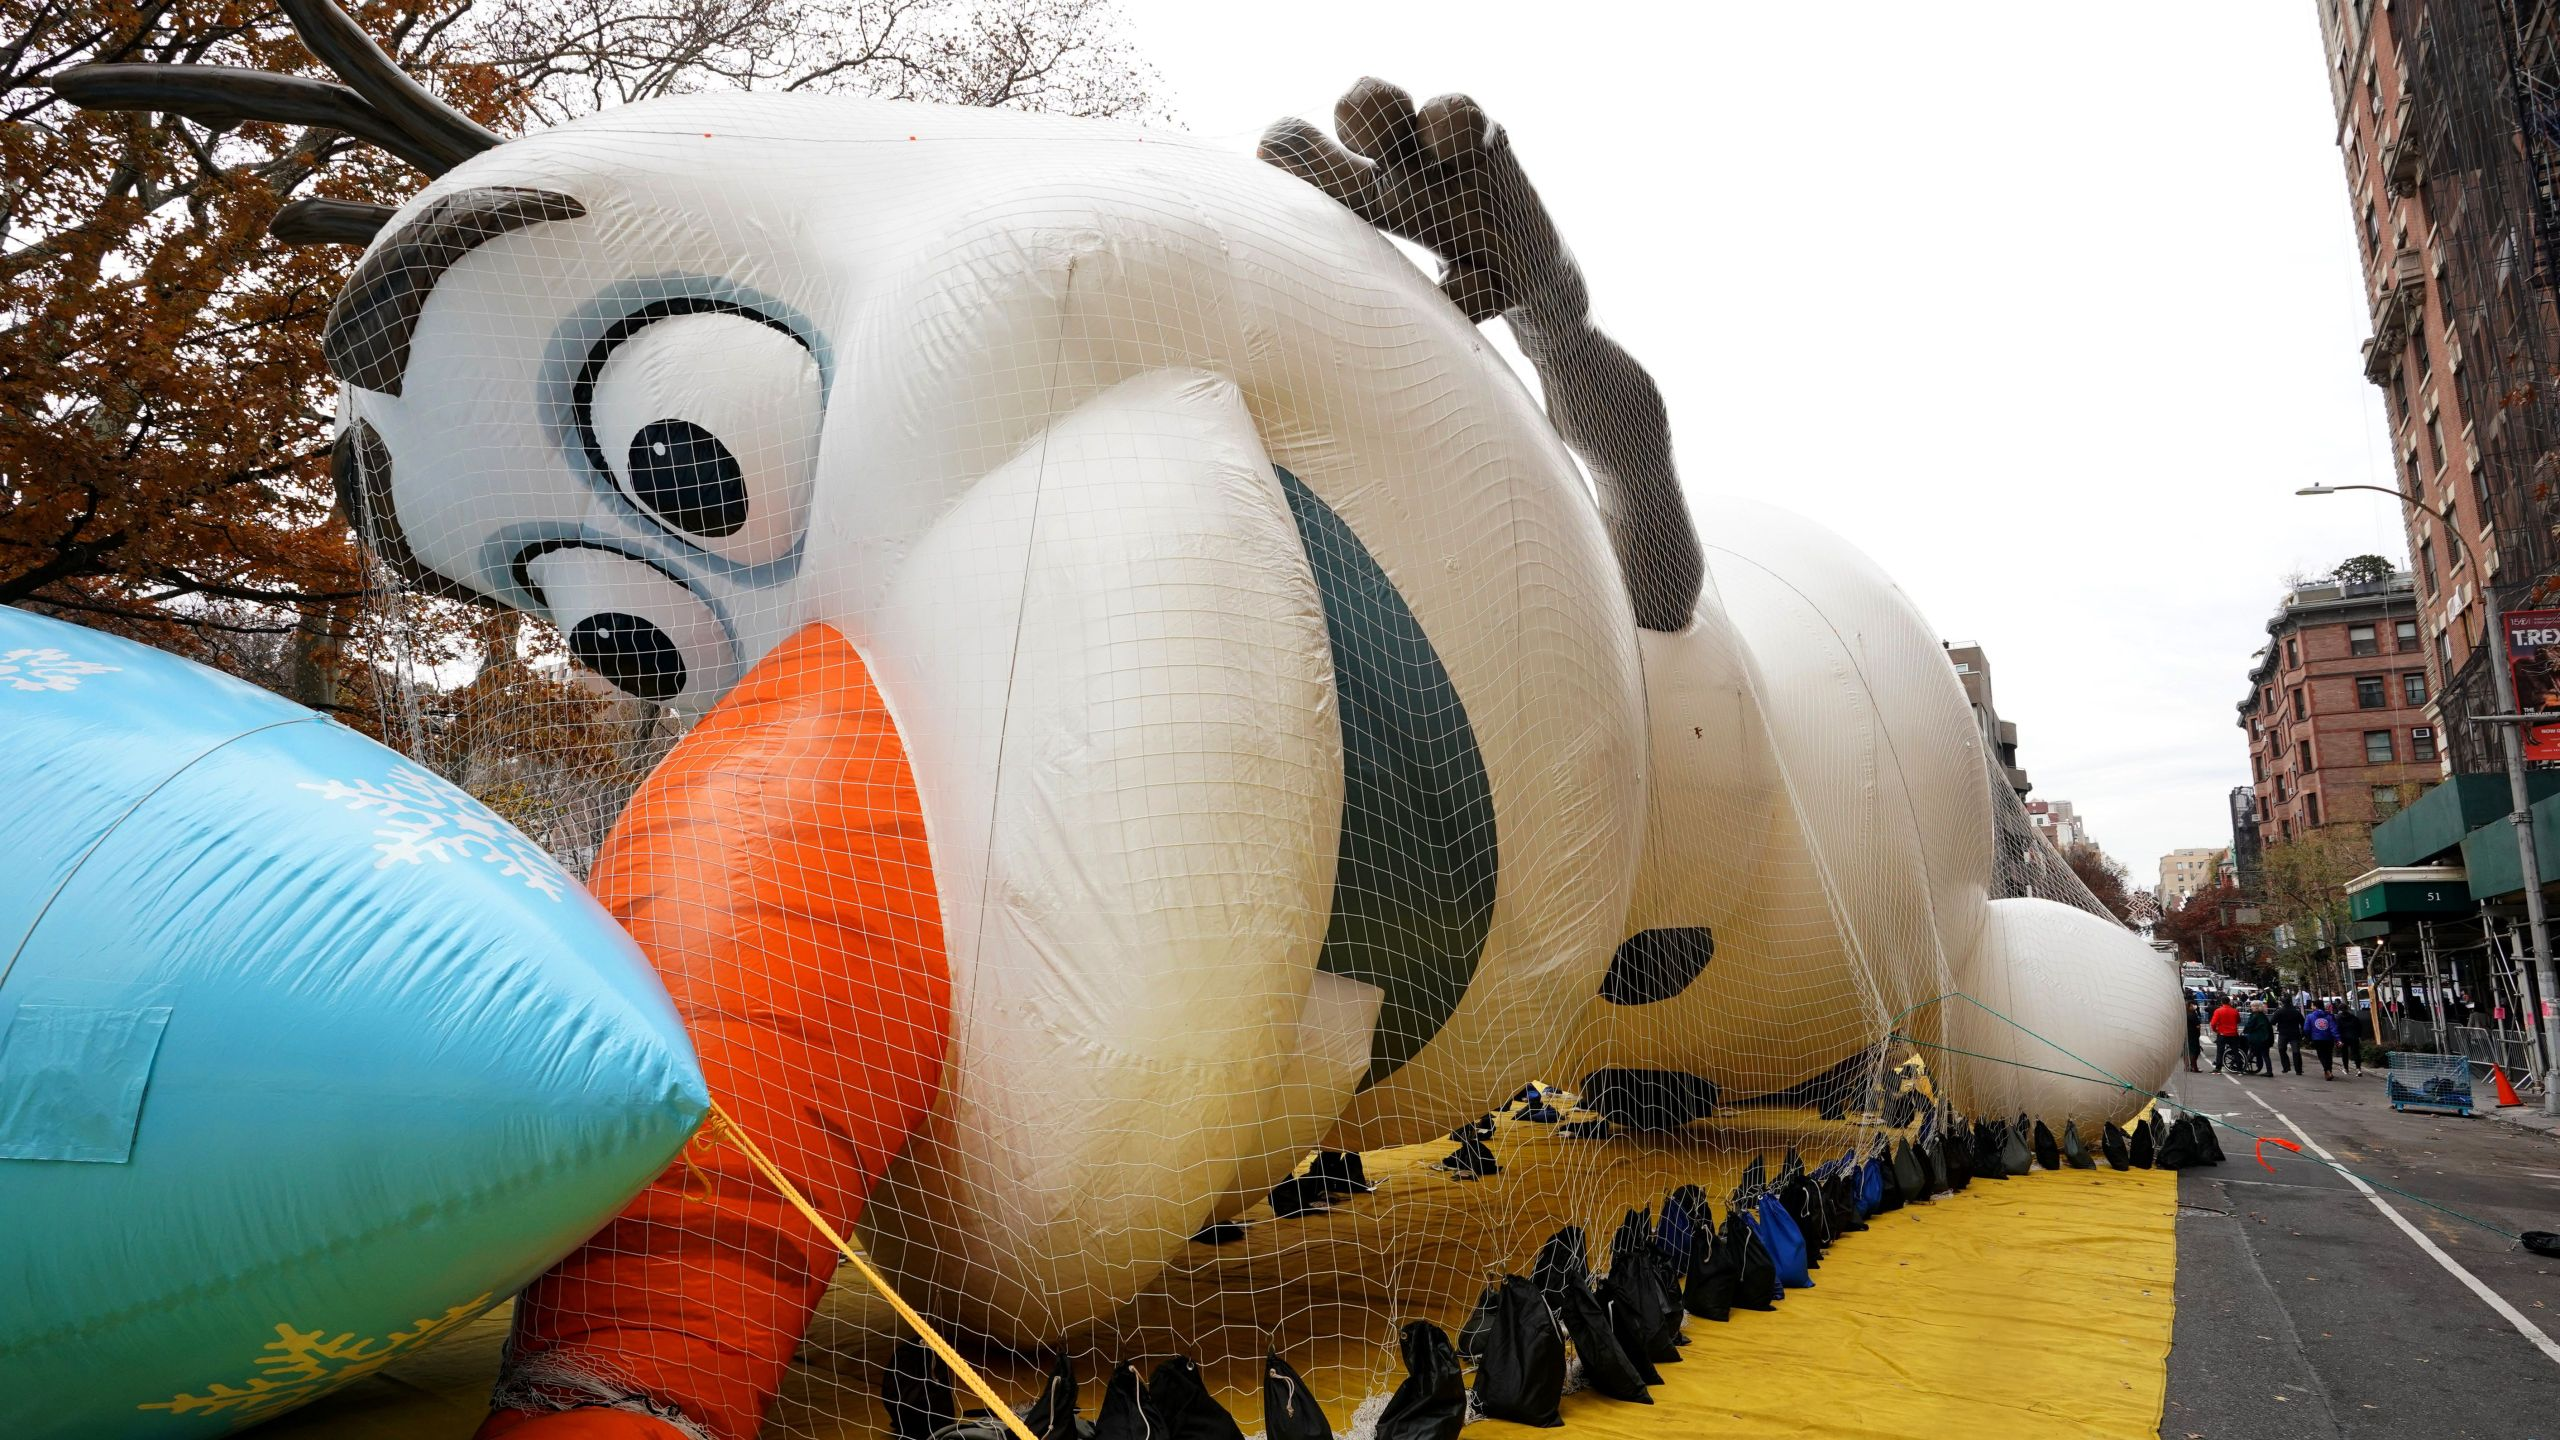 Olaf, a fictional character from Disney's Frozen, is pictured during the Macy's Thanksgiving Day Parade balloon inflation in New York City on Nov. 27, 2019. (Credit: TIMOTHY A. CLARY/AFP via Getty Images)